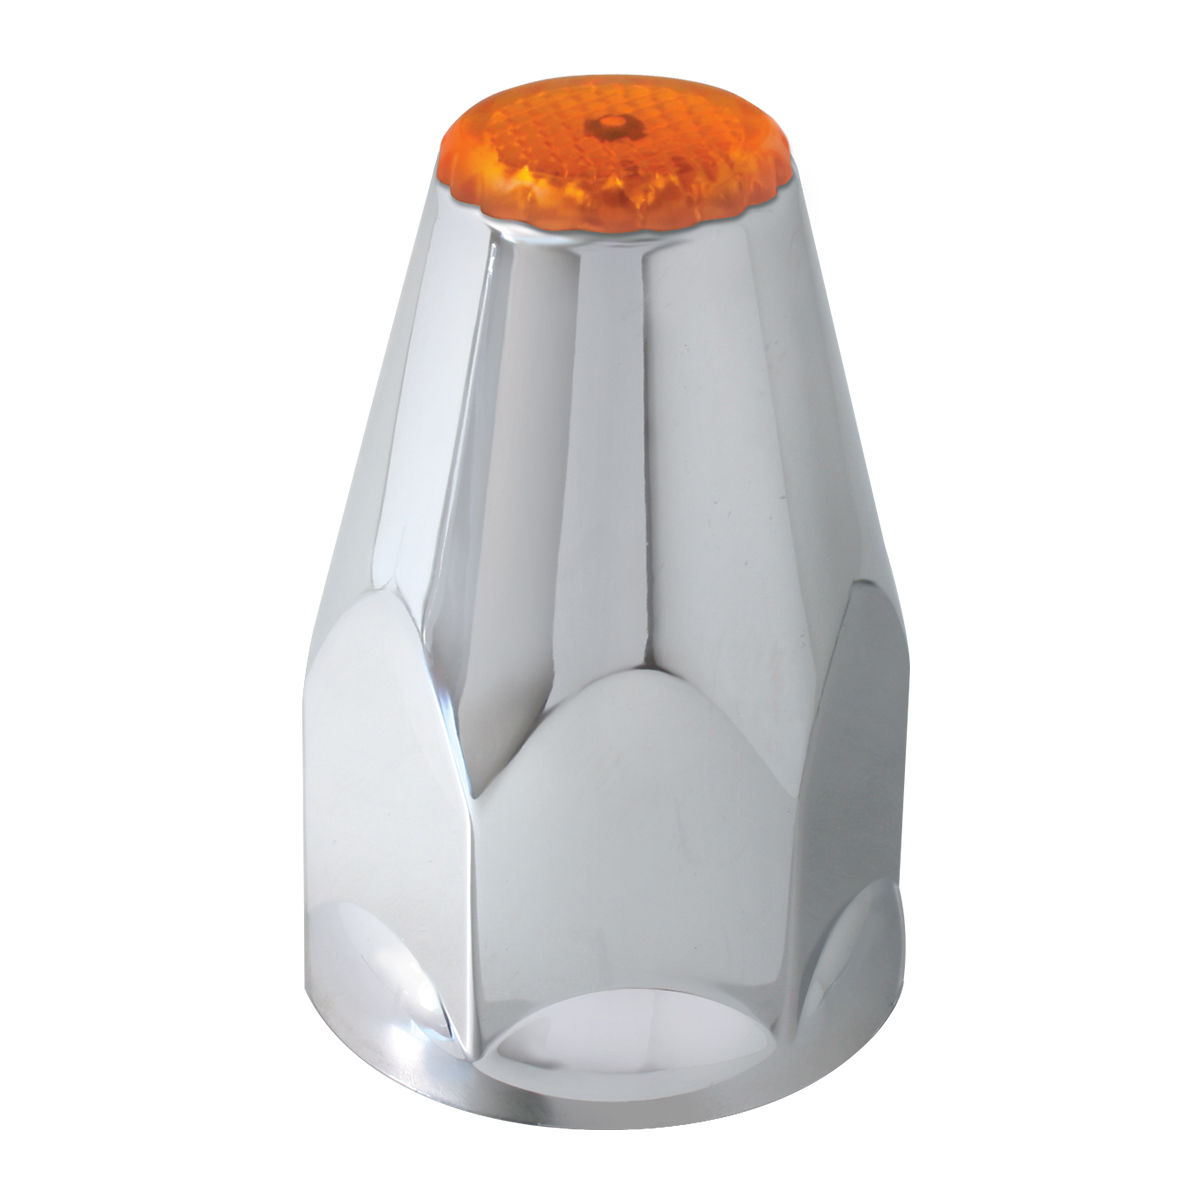 Classic Chrome Plastic 33mm Lug Nut Cover with Amber Reflector